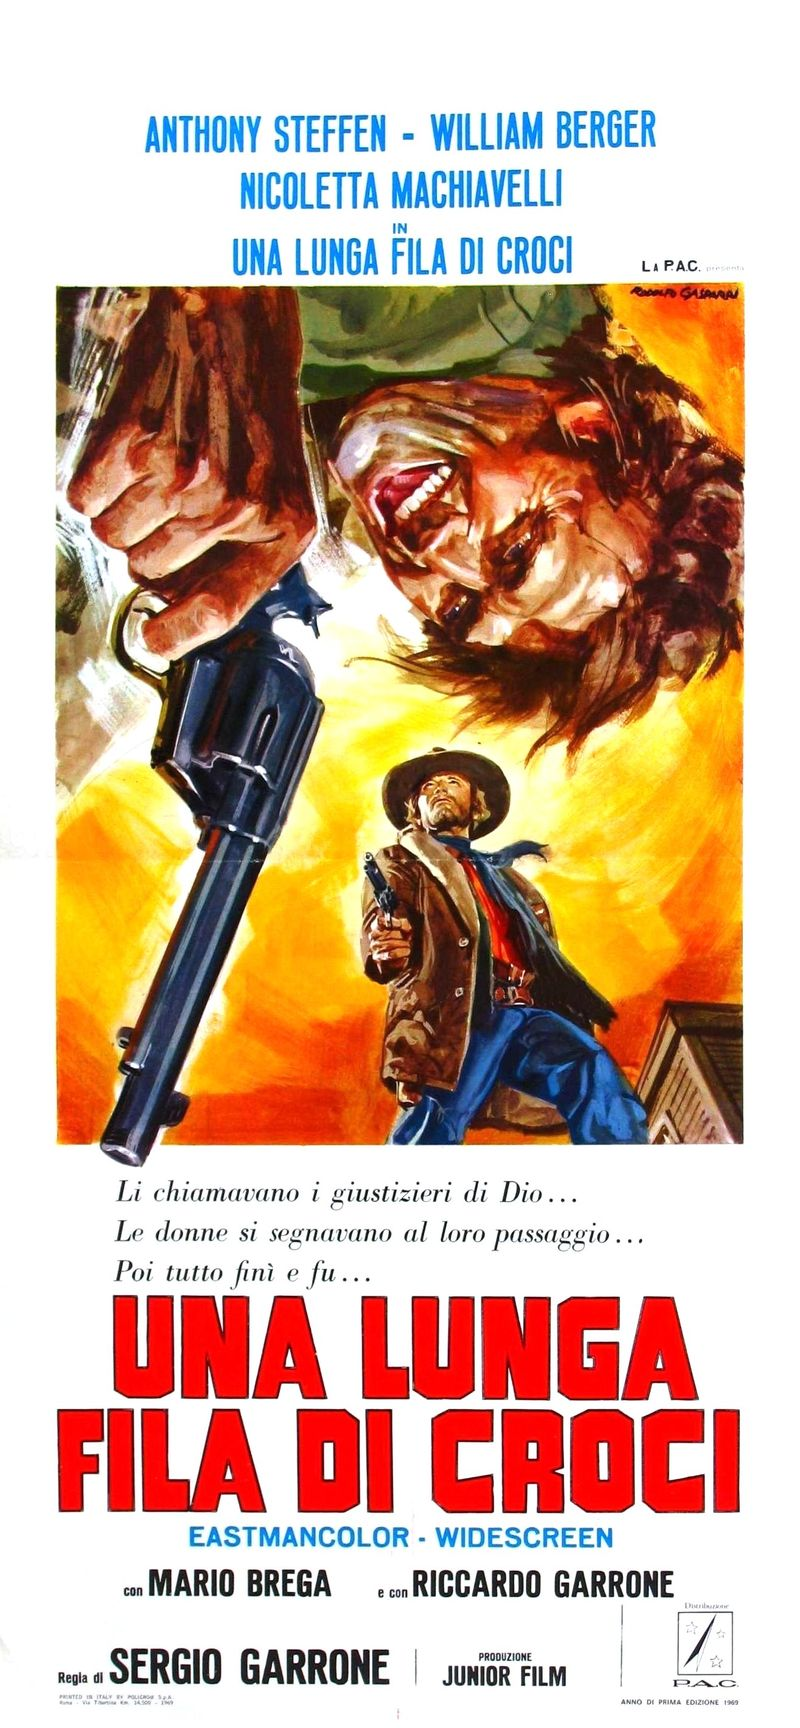 POSTER - A NOOSE FOR DJANGO (NO ROOM TO DIE)